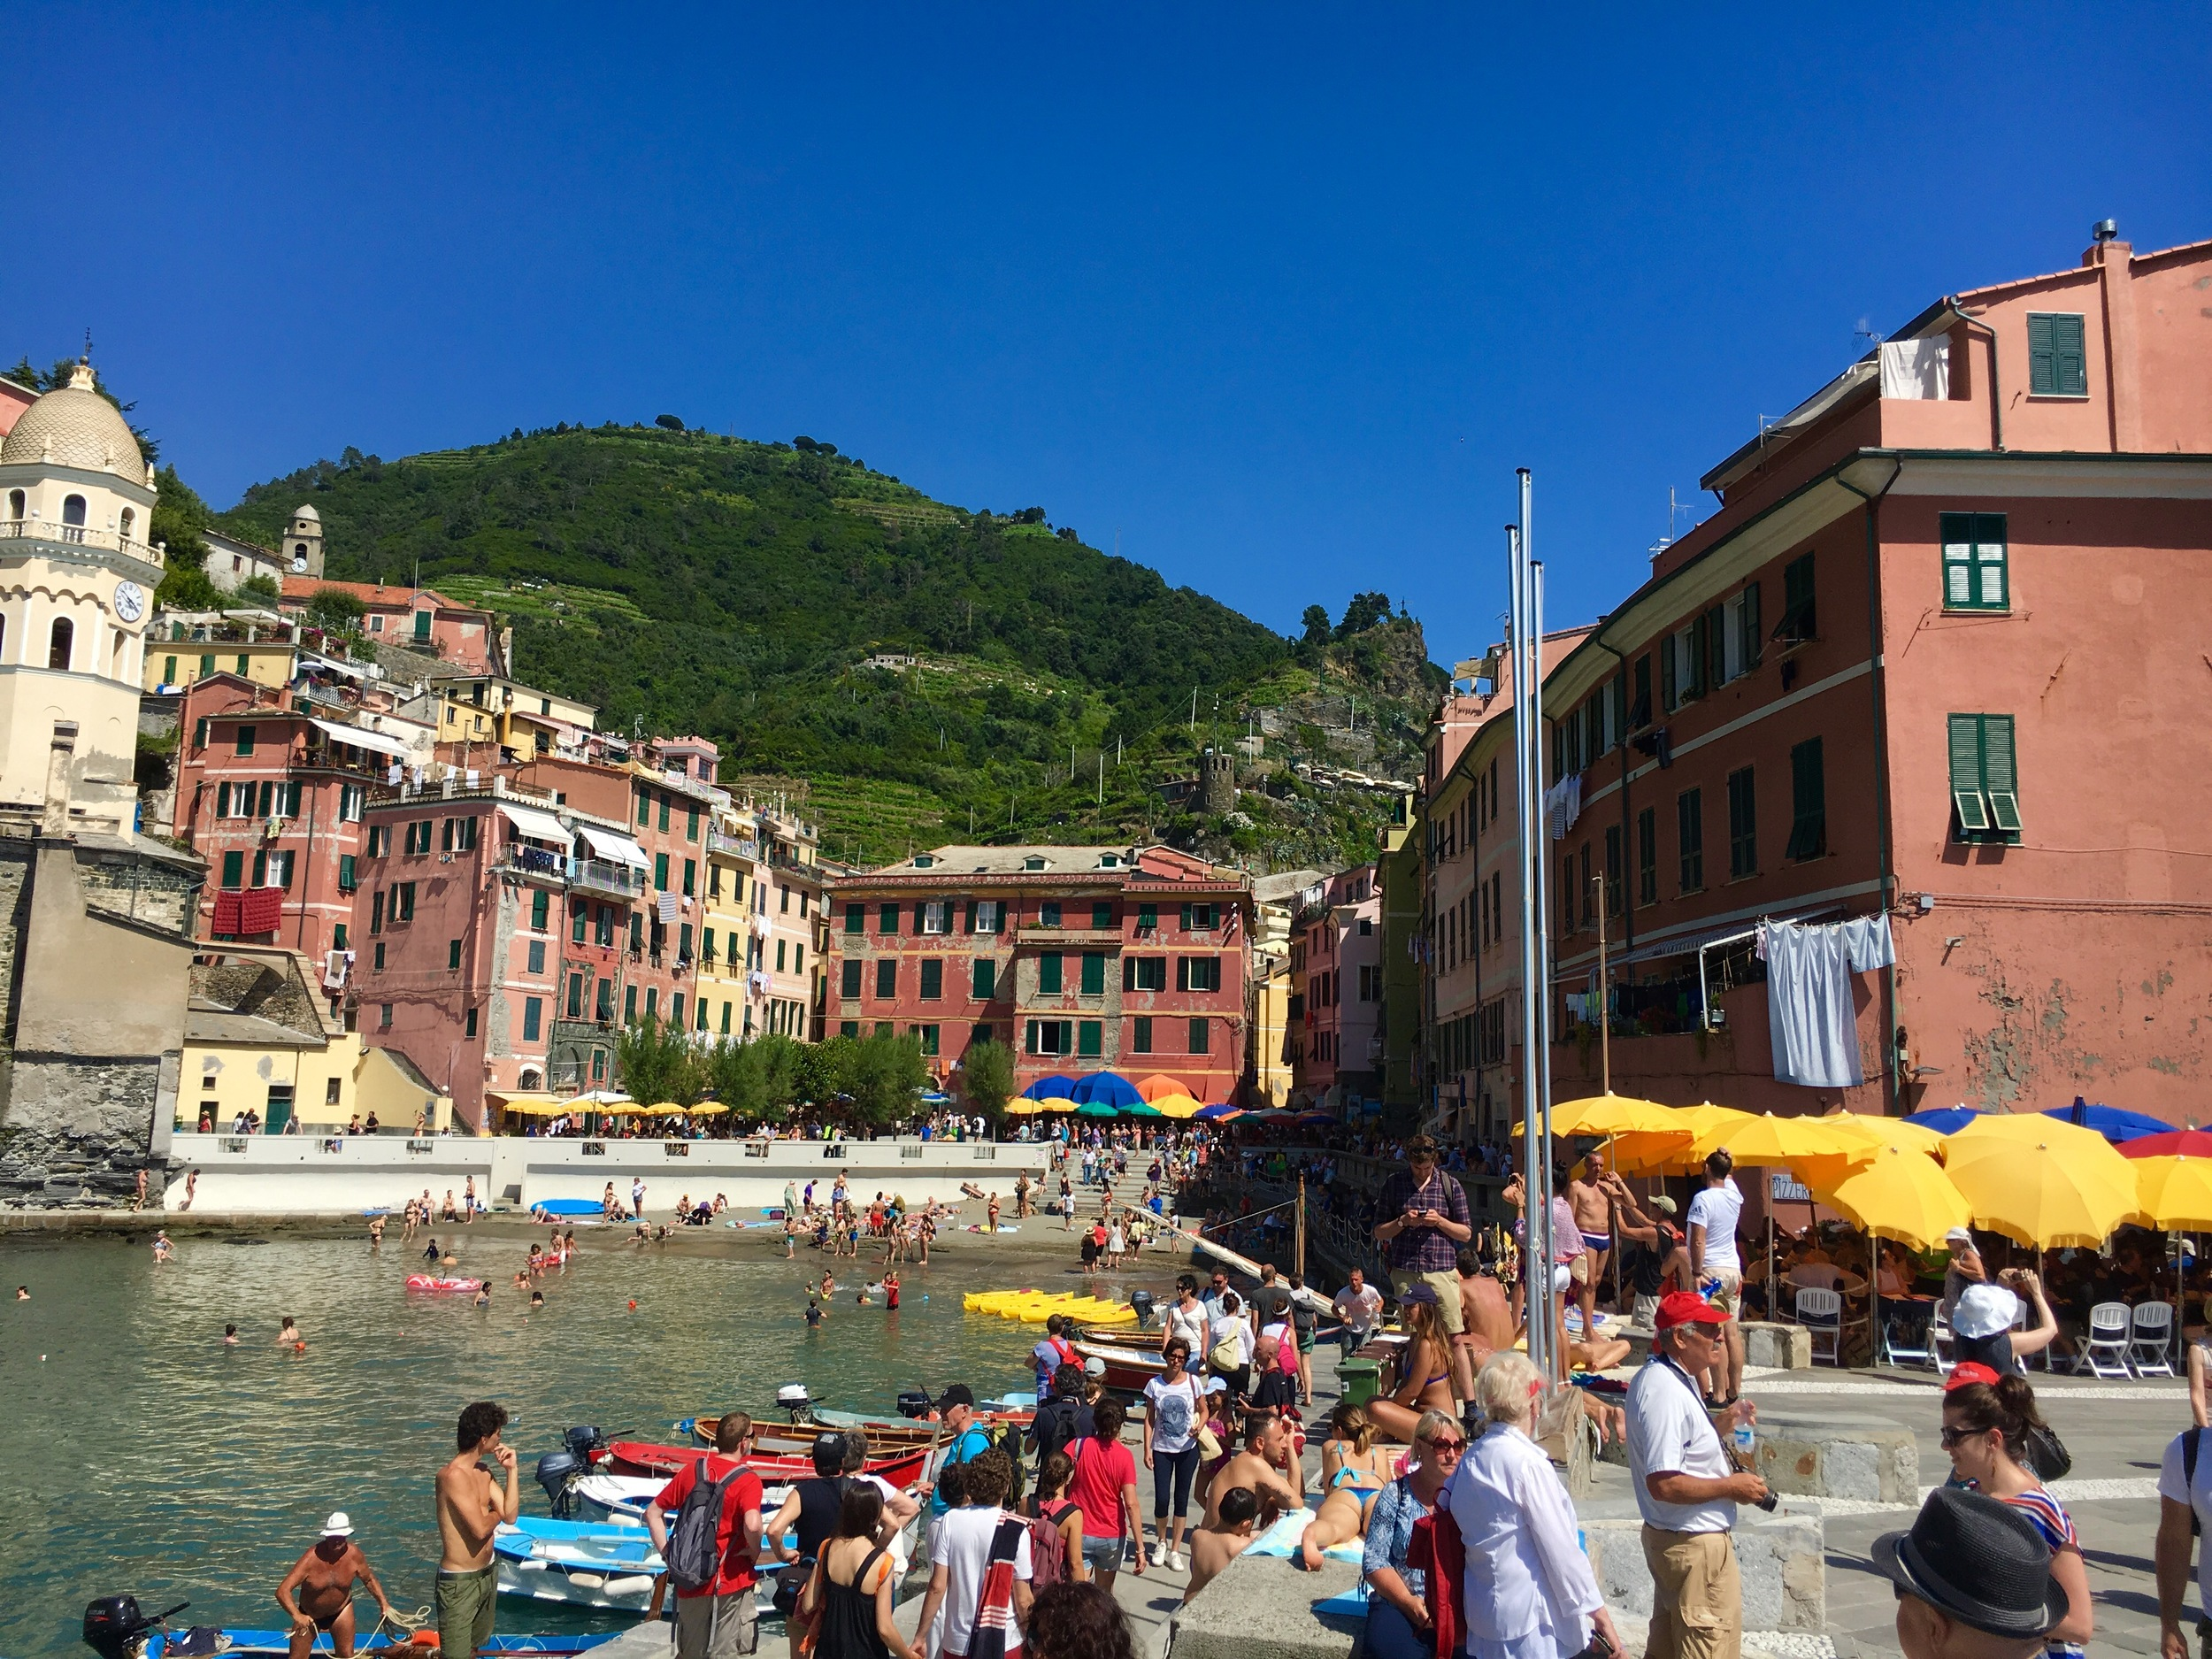 view of the town of Vernazza, Cinque Terre, Italy